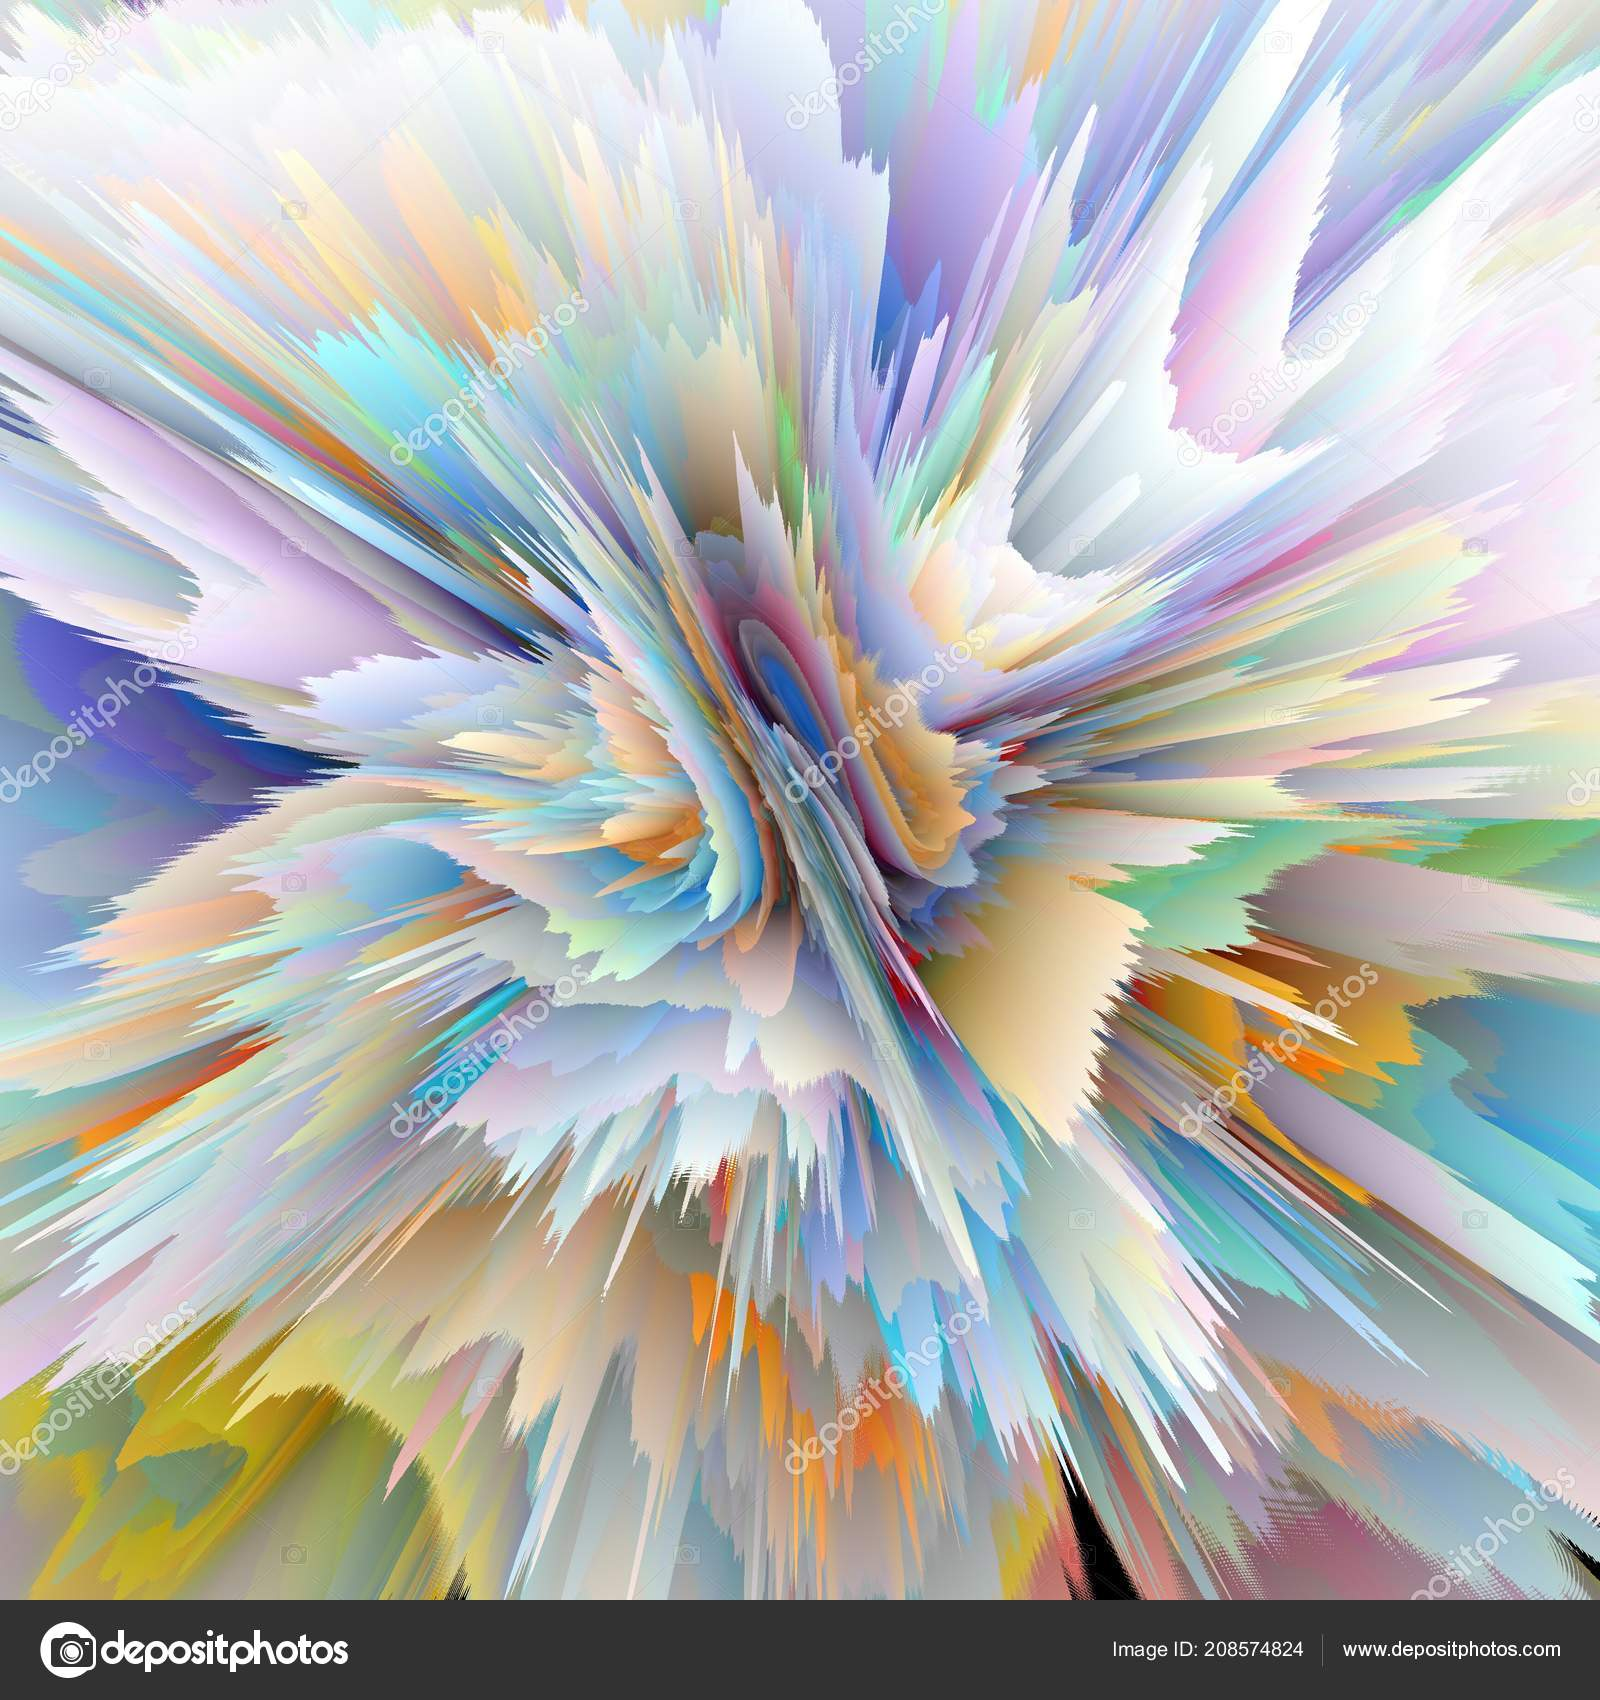 depositphotos 208574824 stock photo abstract pattern background graphic modern